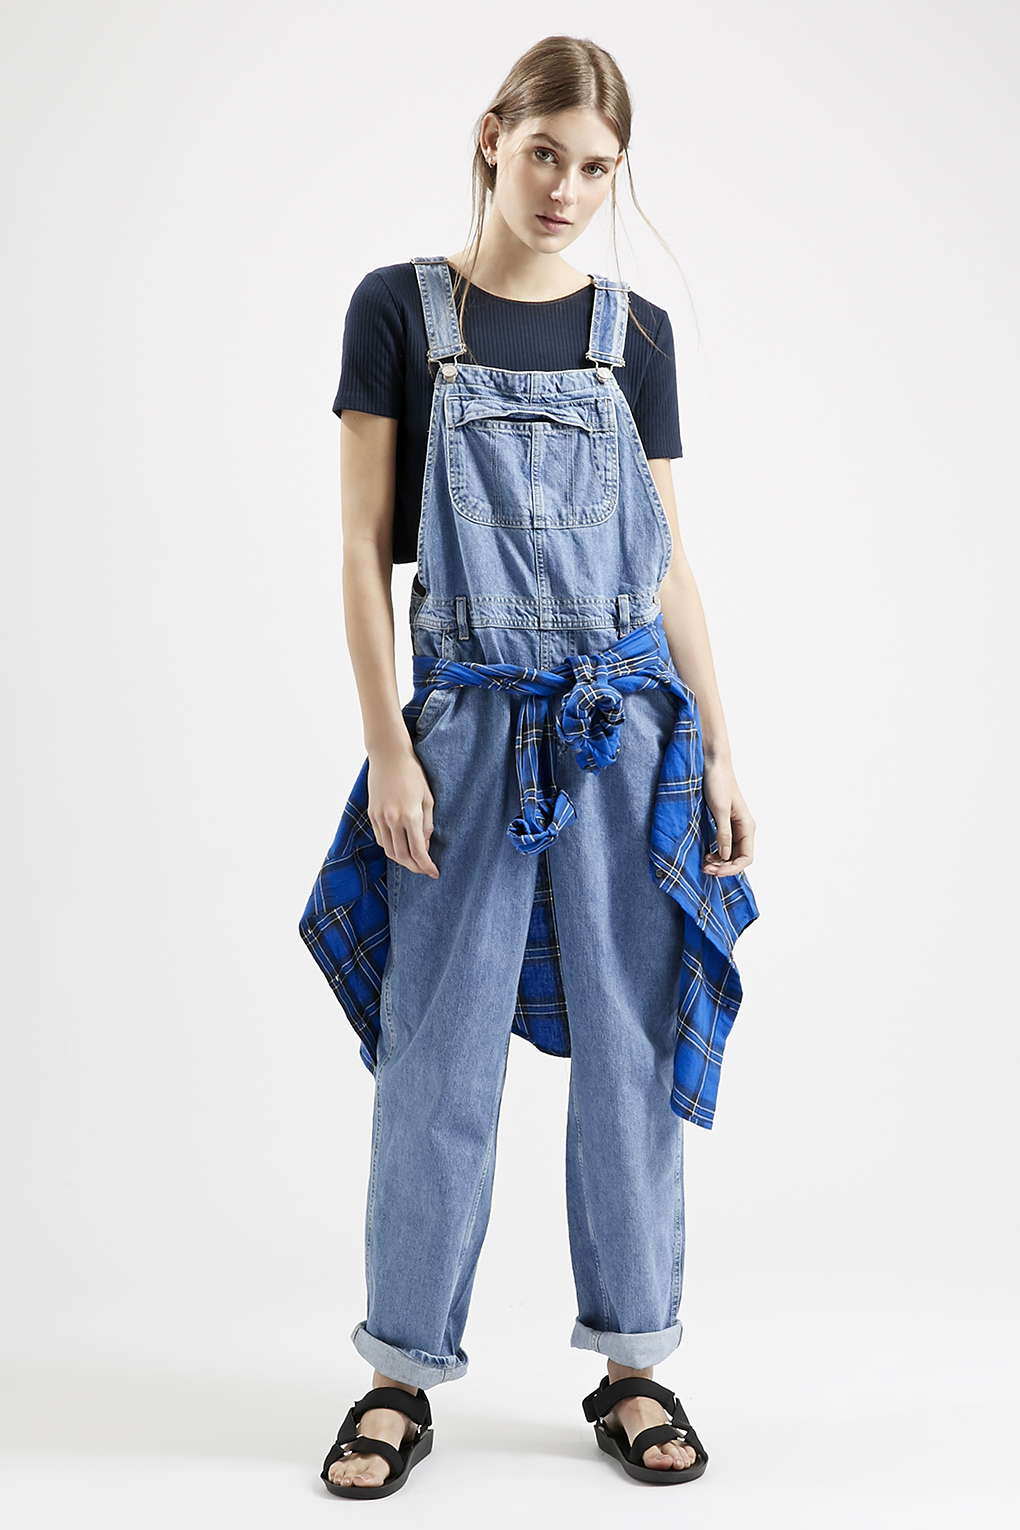 Nicole Richie looks cute in denim dungarees and trainers